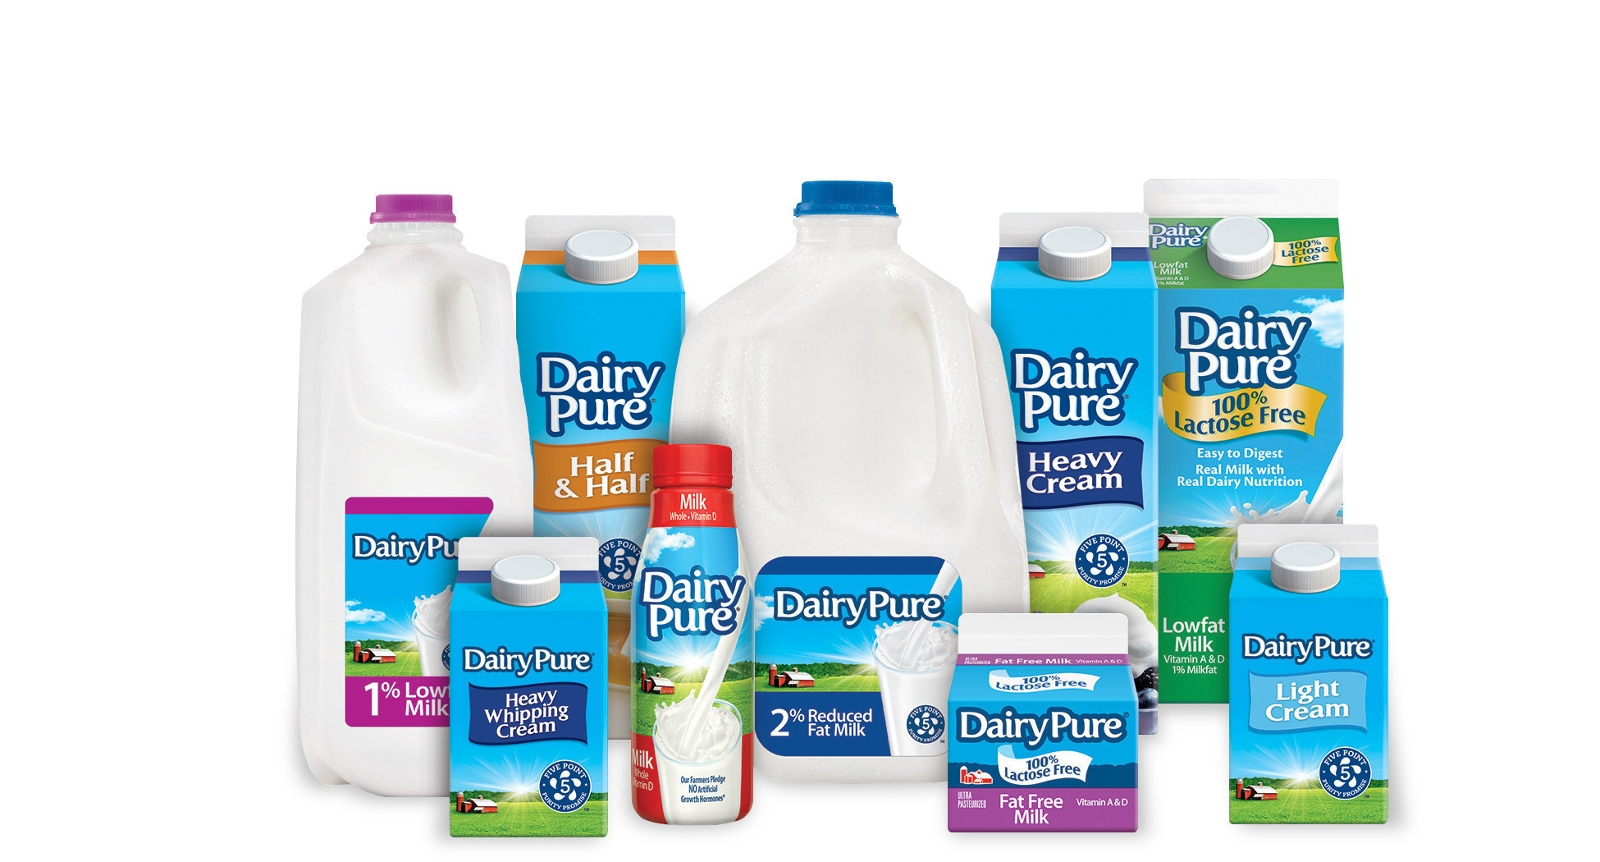 DairyPure One Of Most Successful Food And Beverage Product Launches Of 2015